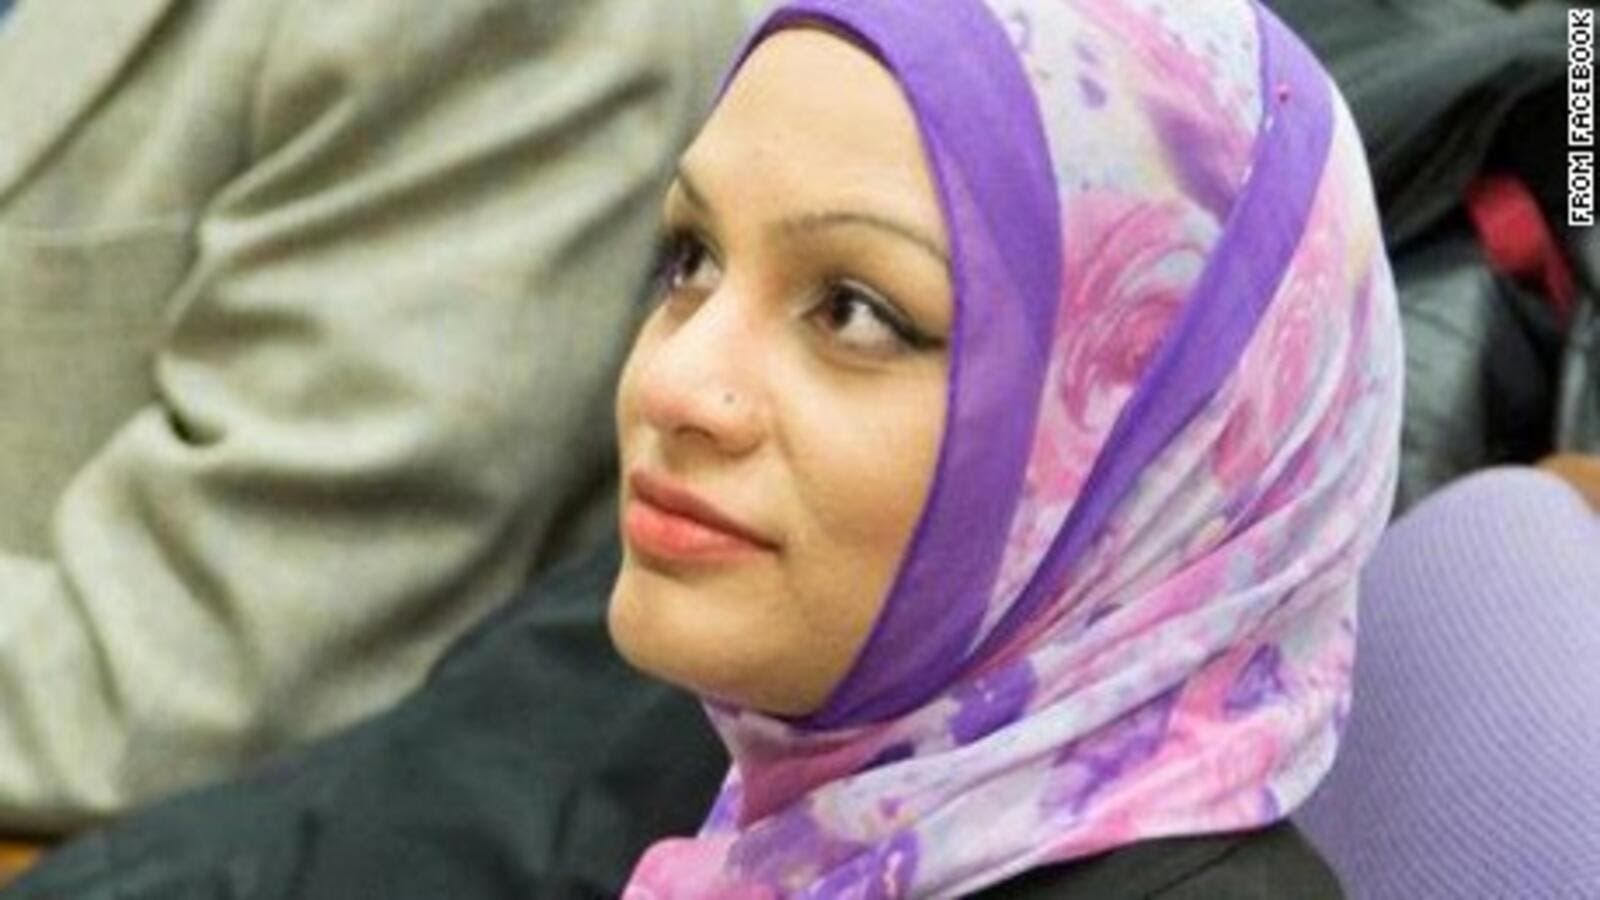 United Airlines refused to serve a Muslim woman Diet Coke